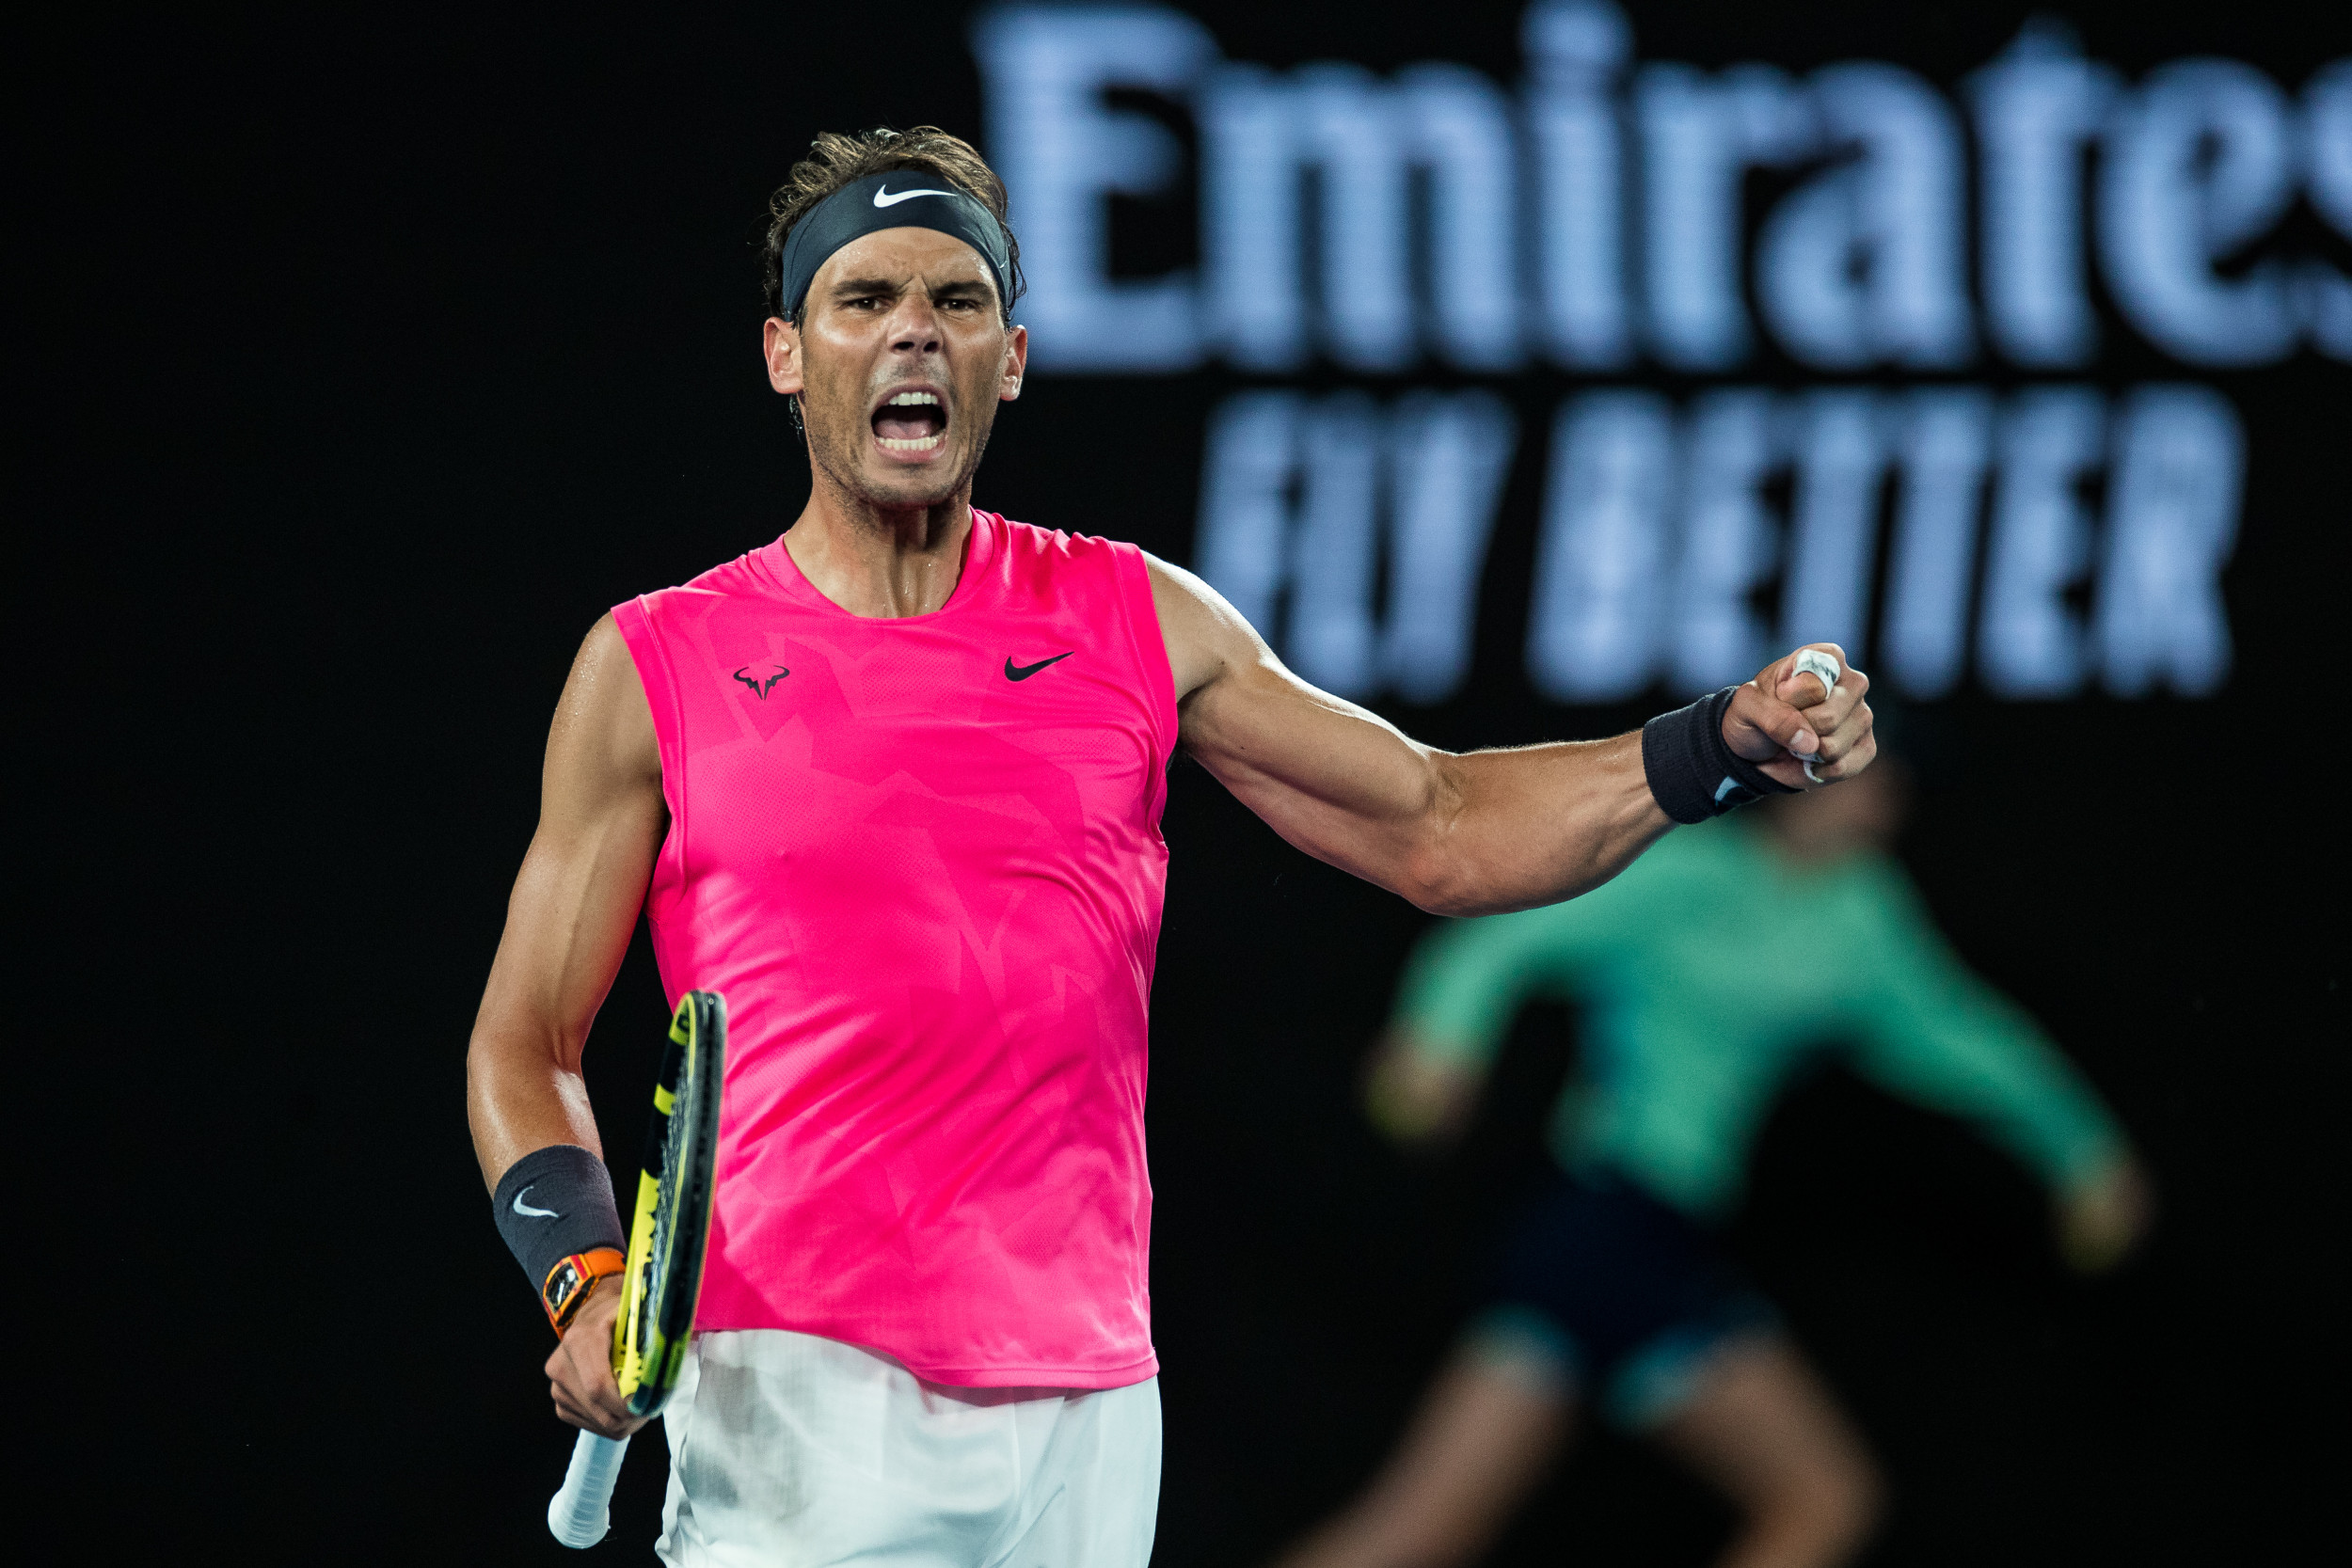 Australian Open 2020 Tv Schedule Where To Watch Rafael Nadal Third Round Match Start Time Live Stream